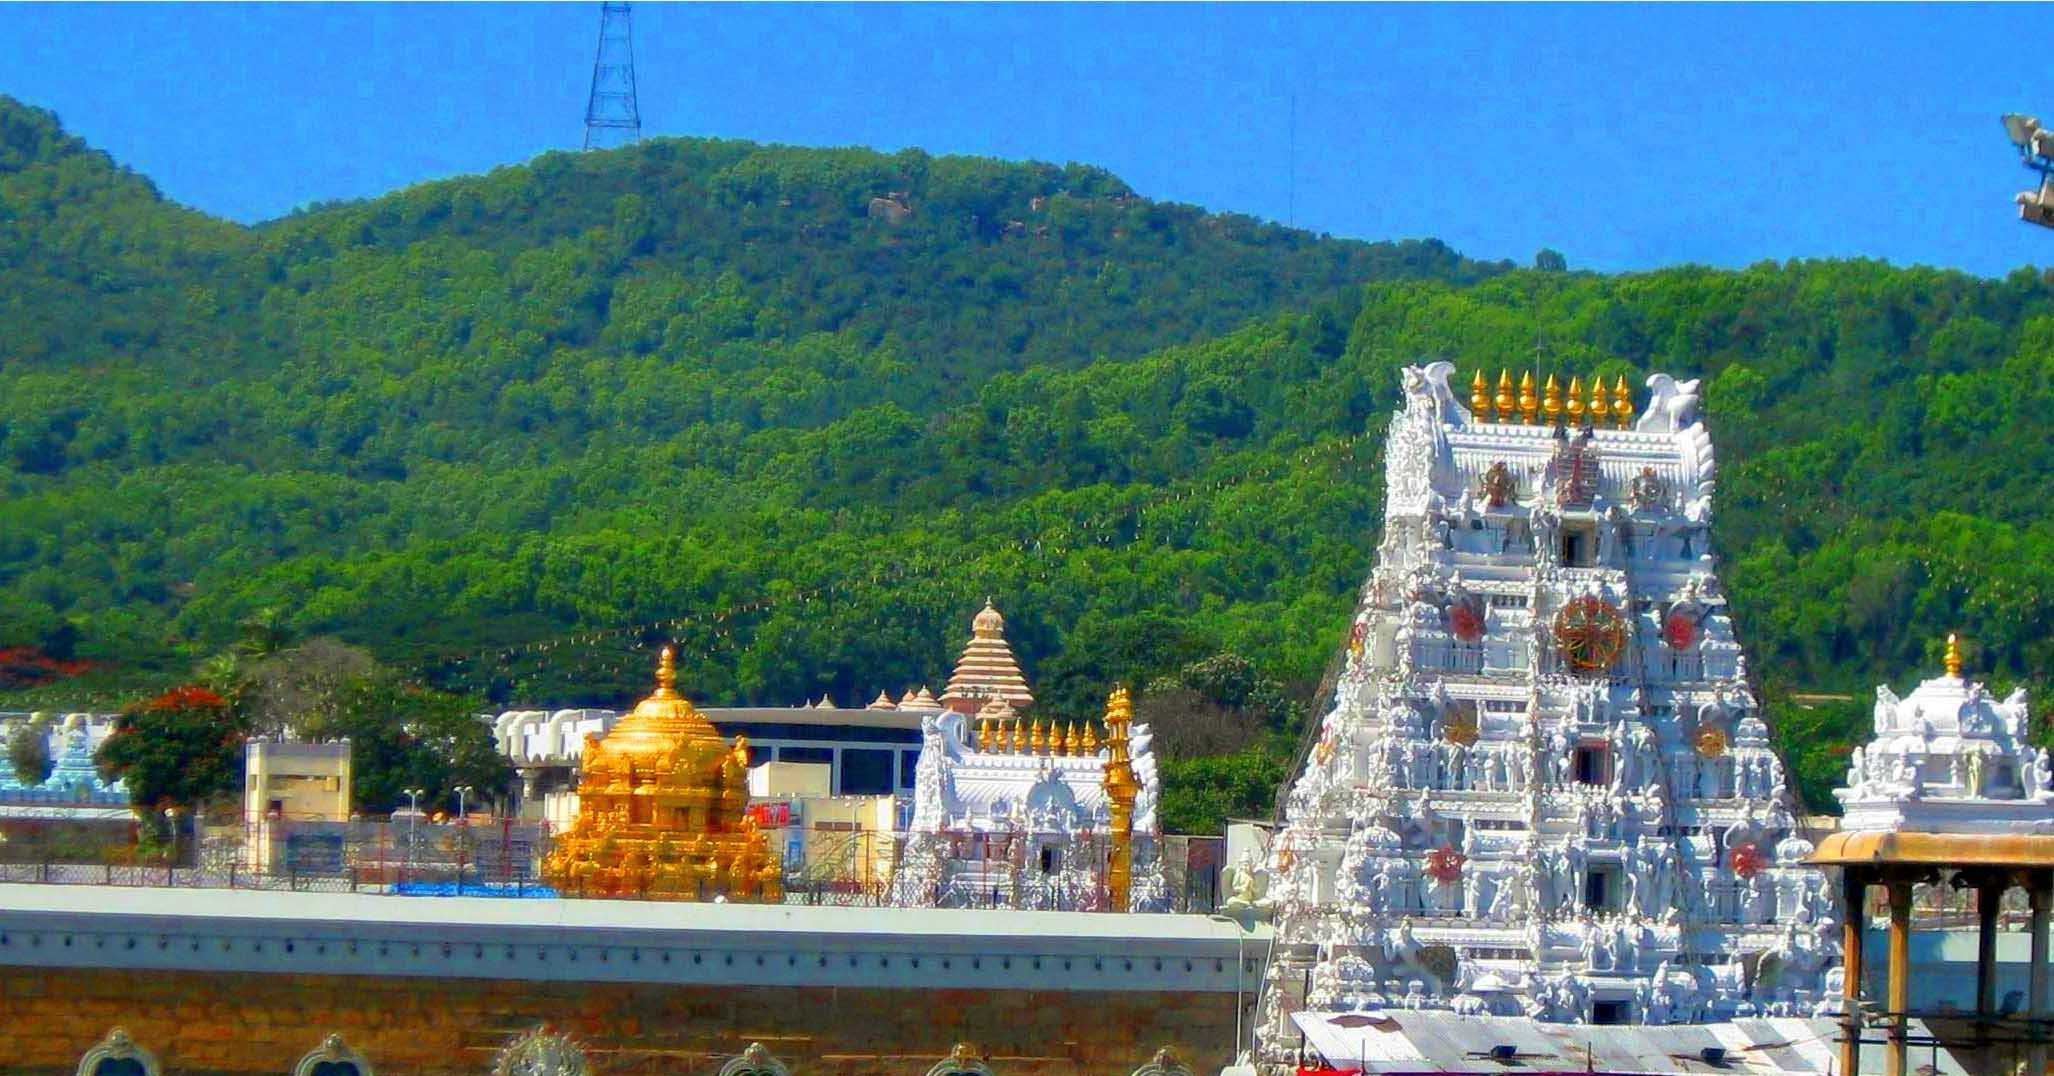 Tirupati Balaji darshan tour package from Mumbai